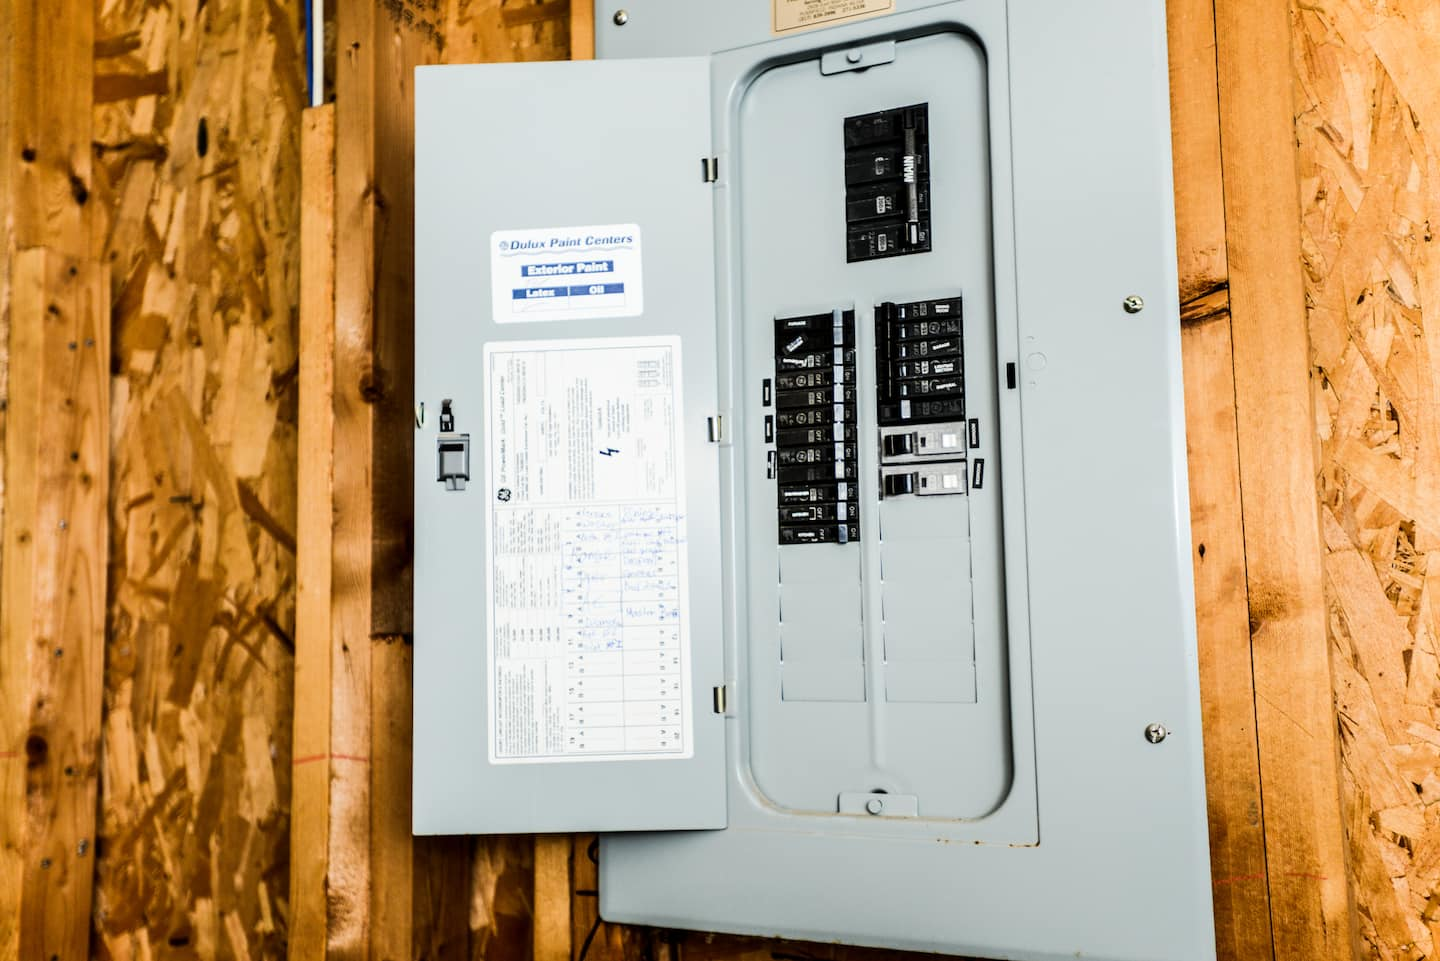 Afci Breakers Increase Home Safety From Fire Angies List Cost To Replace Wiring In Old House